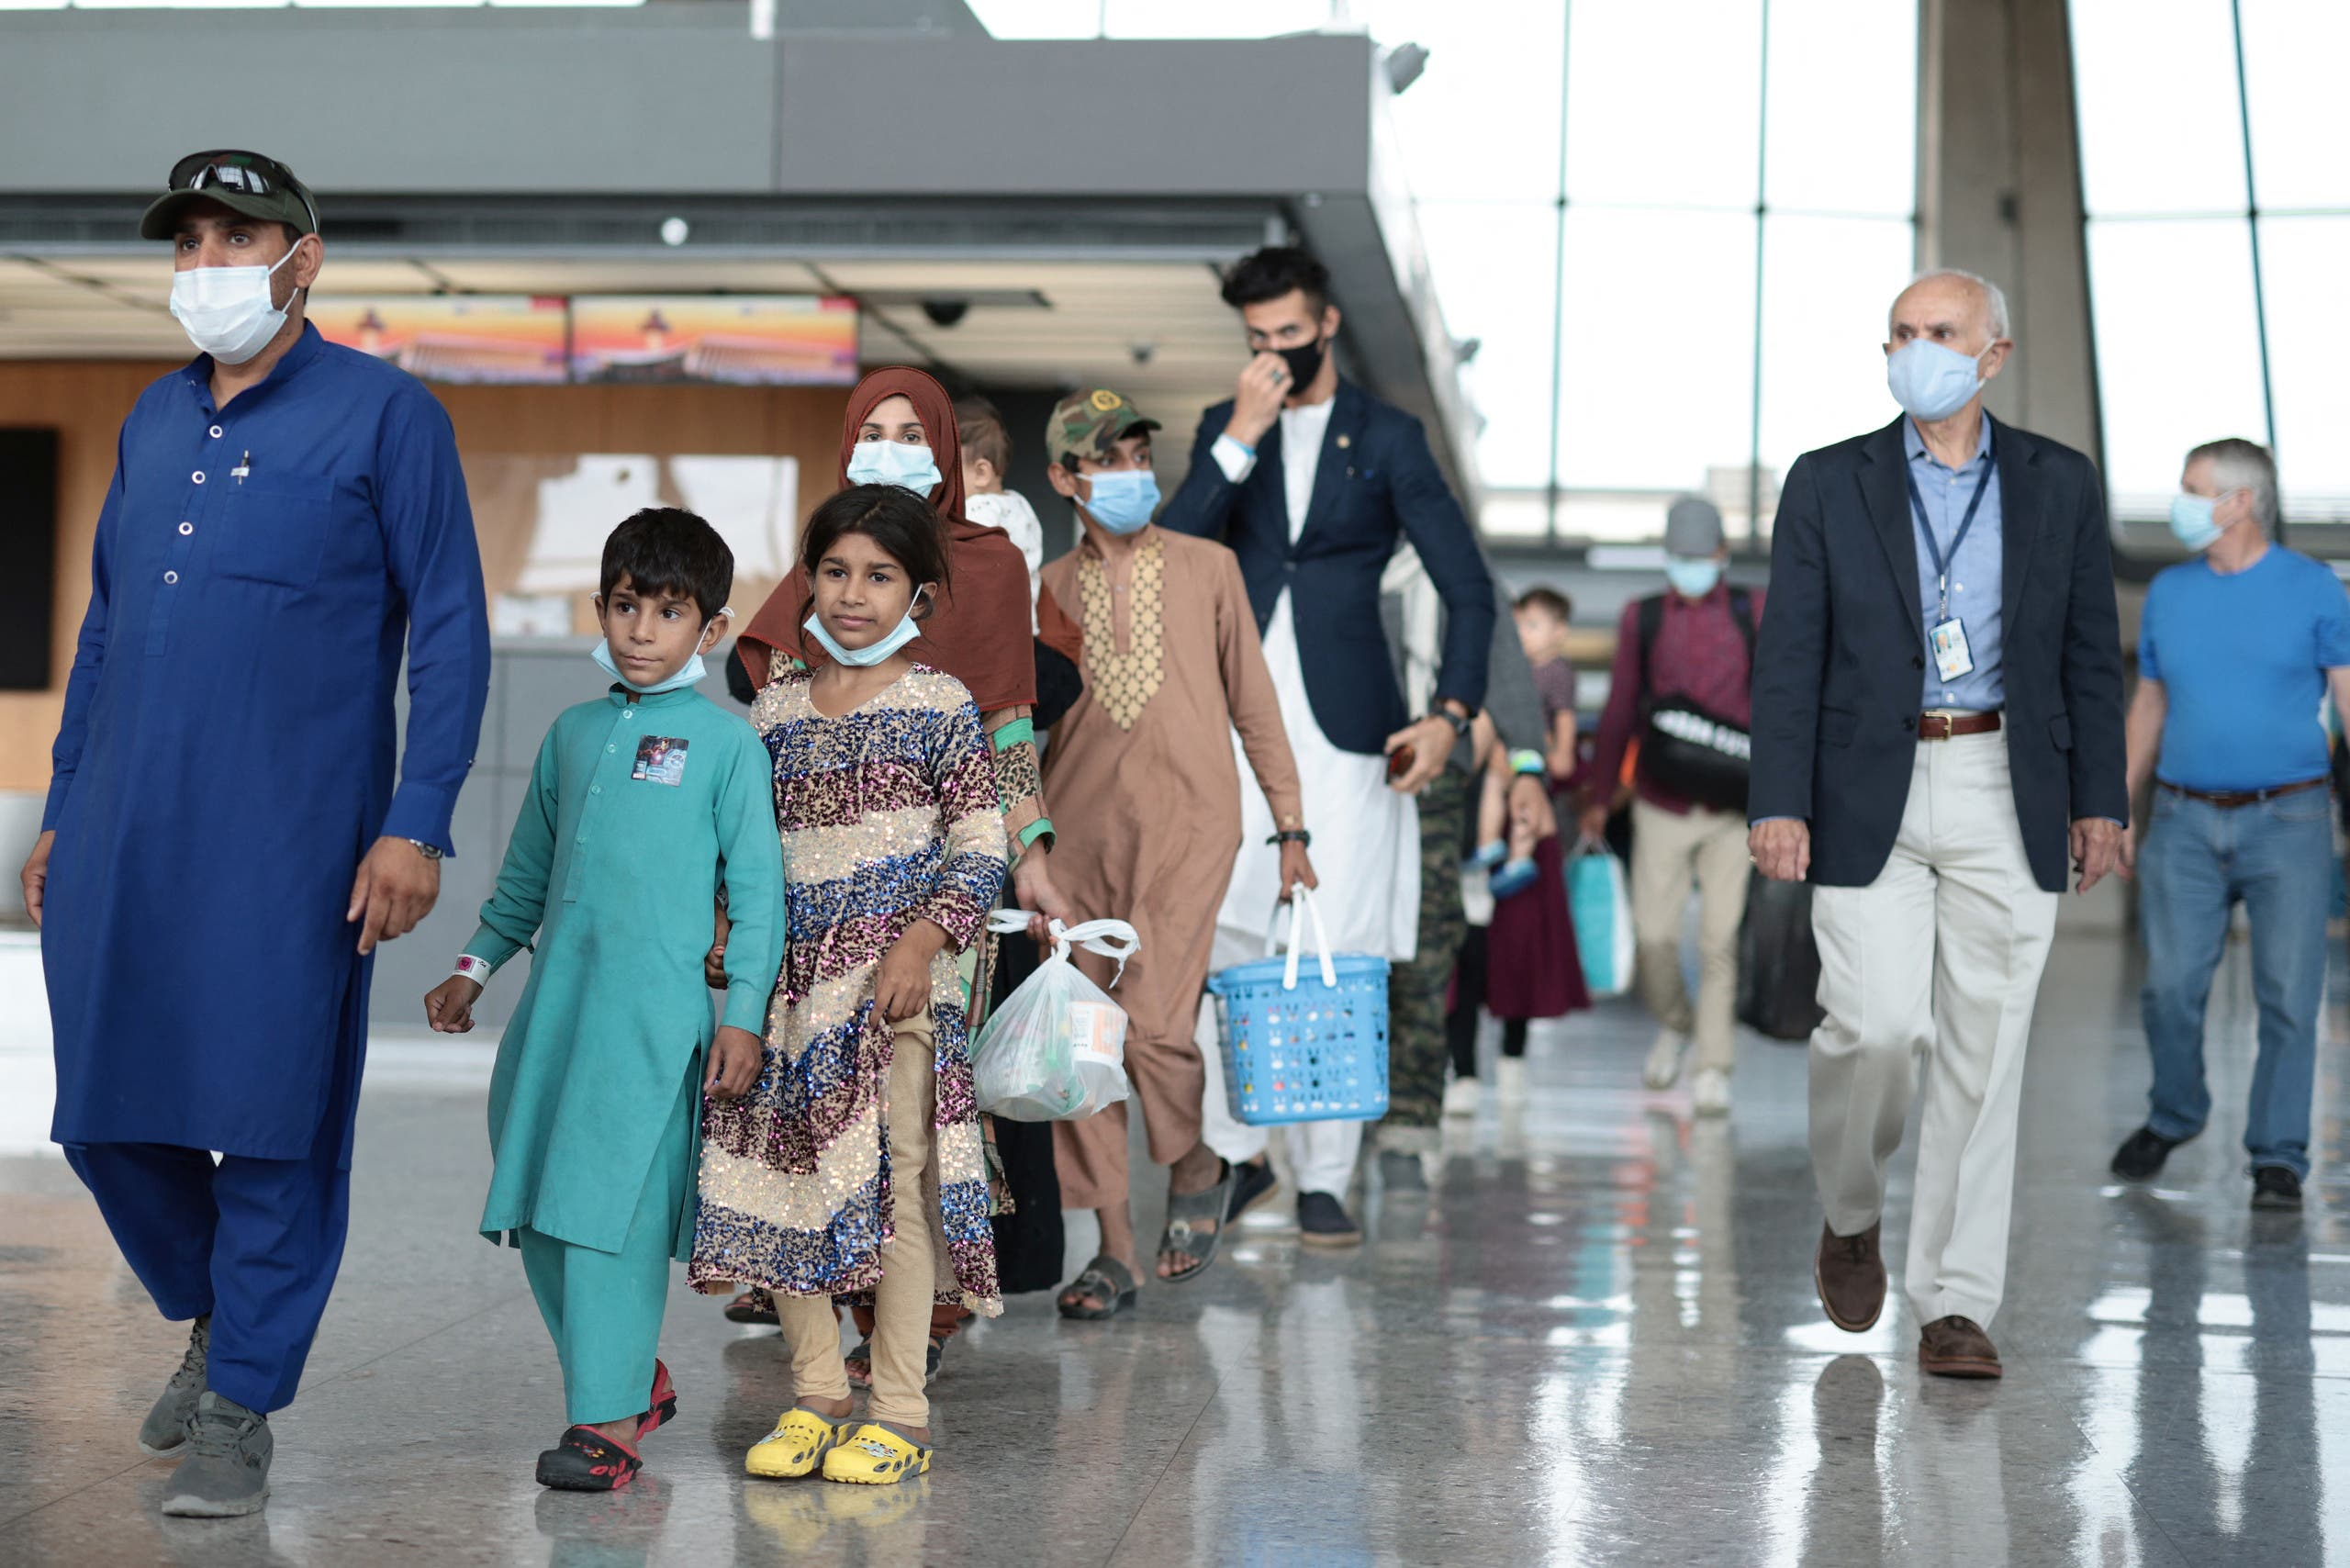 Turkey: We will not keep Afghan refugees for Europe's money